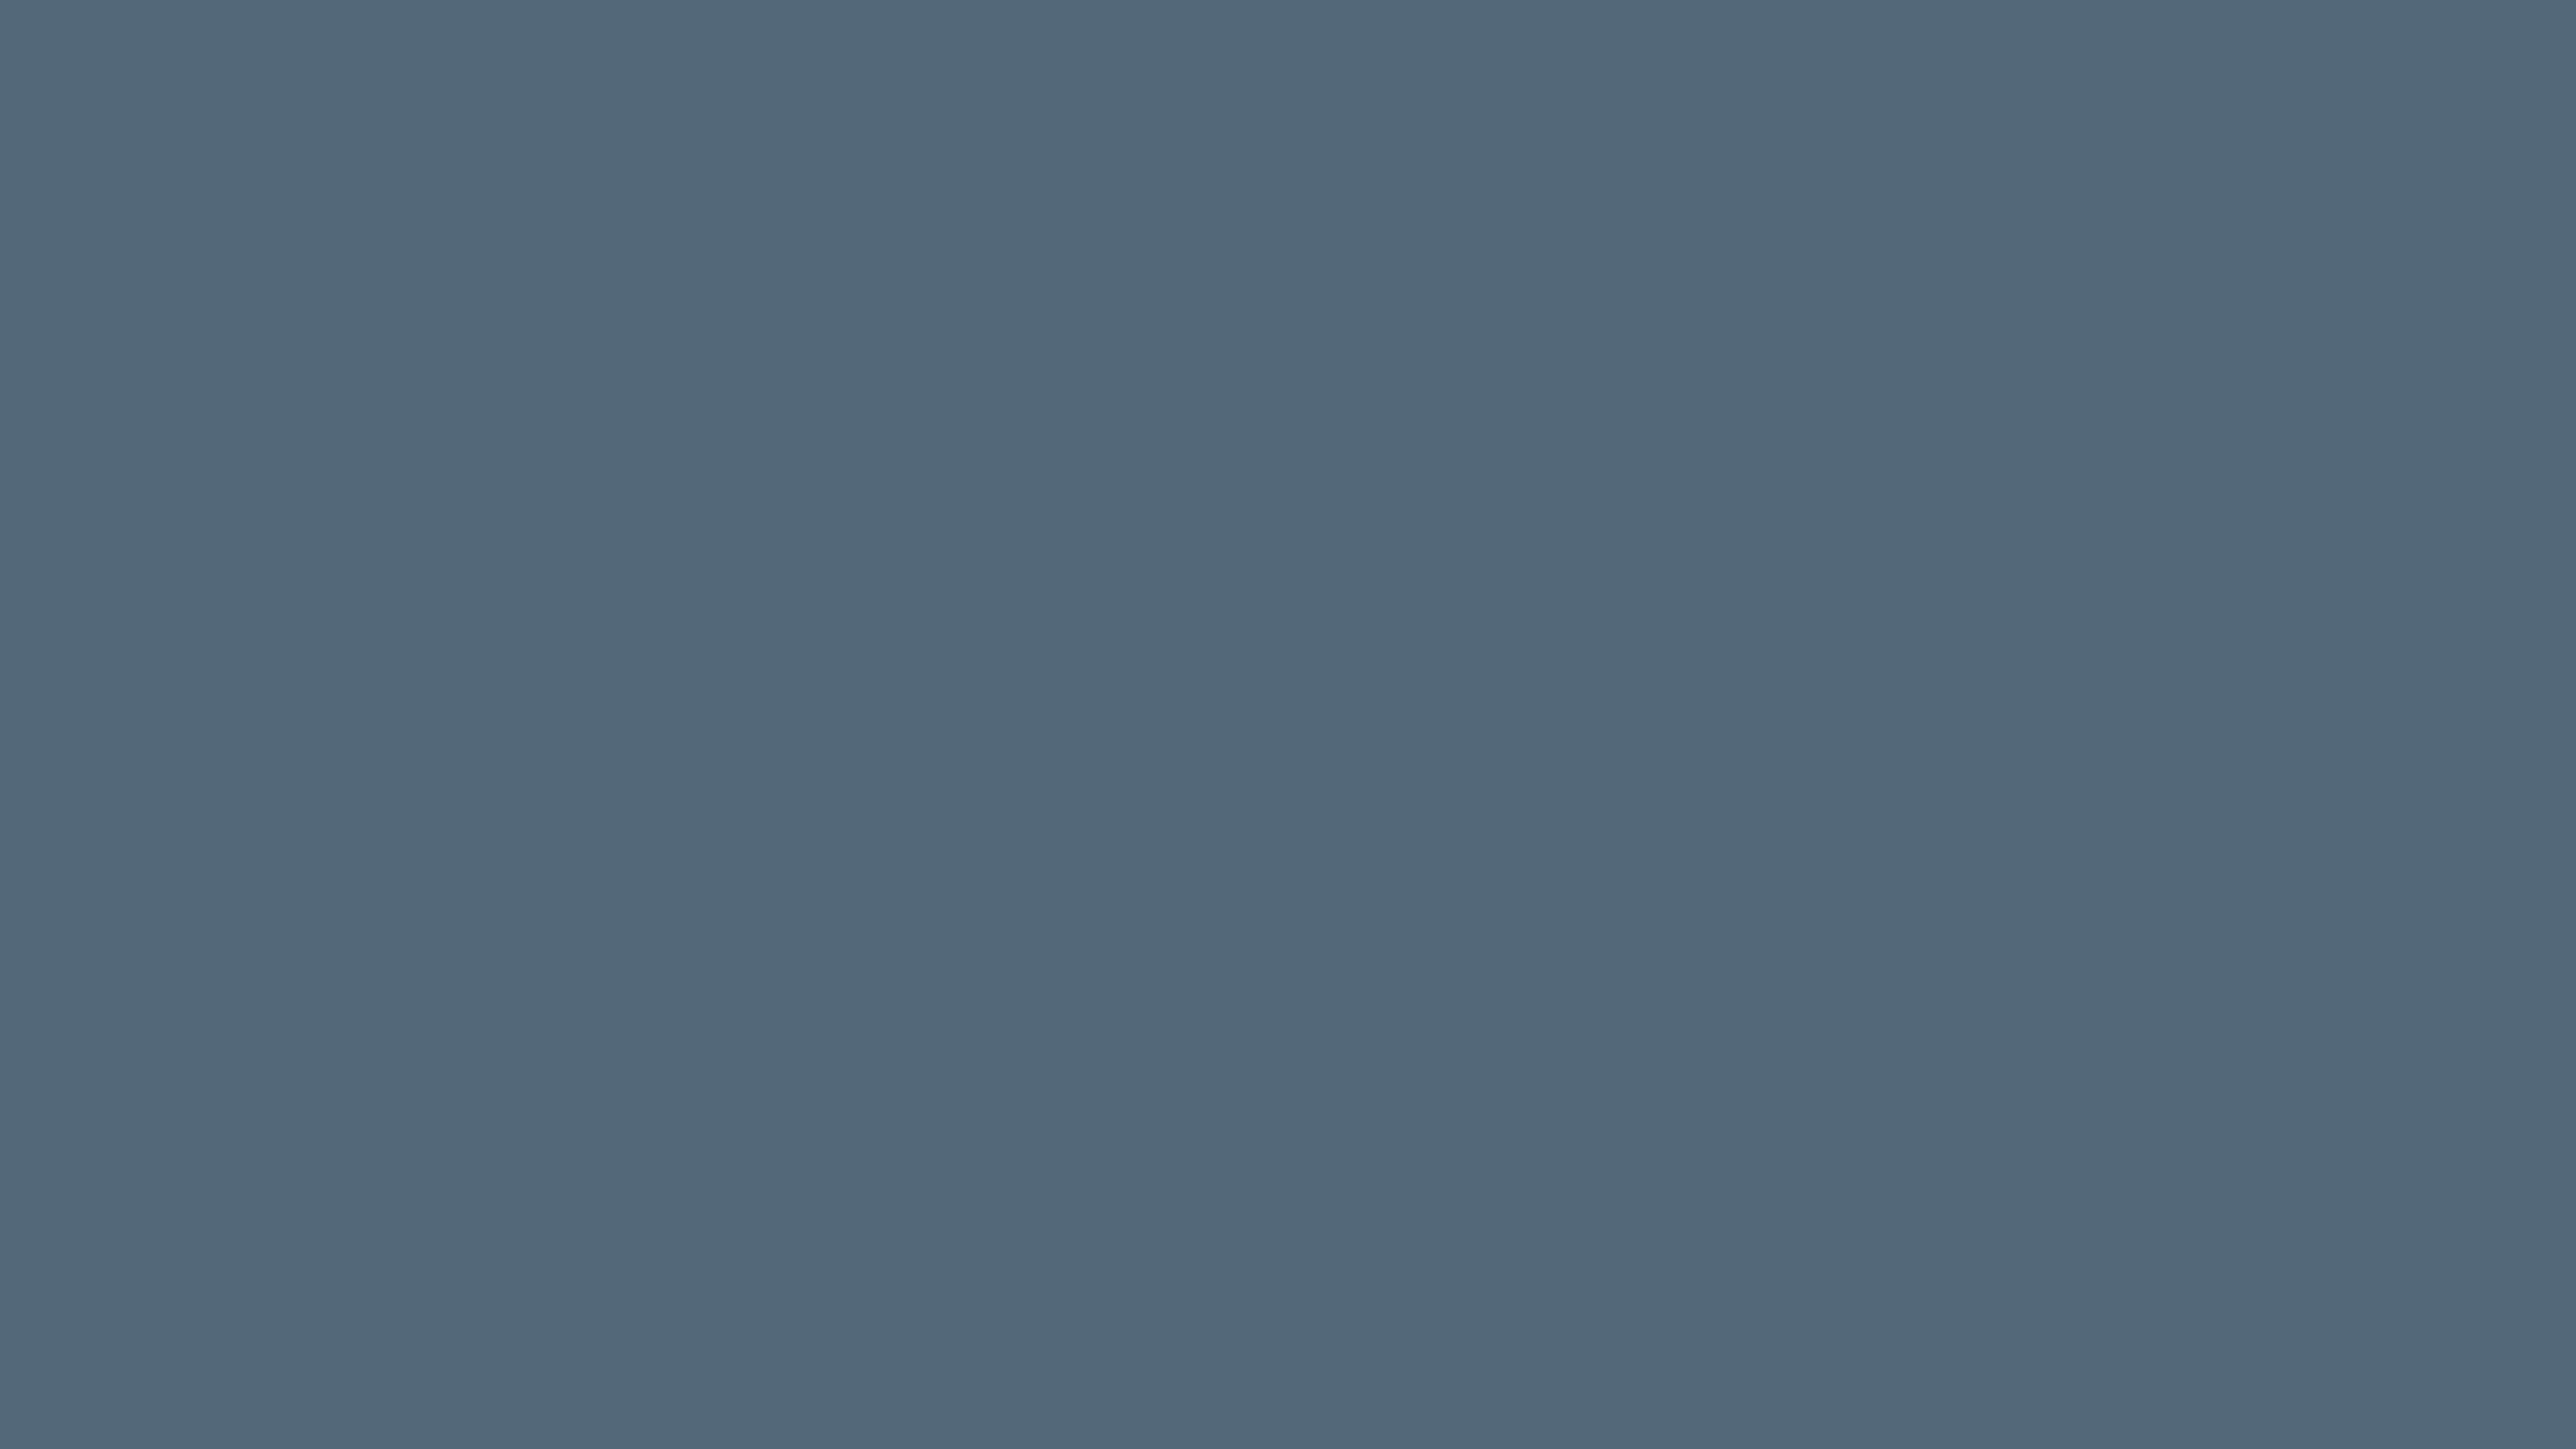 Paynes grey solid color background wallpaper 5120x2880 - Solid light gray wallpaper ...